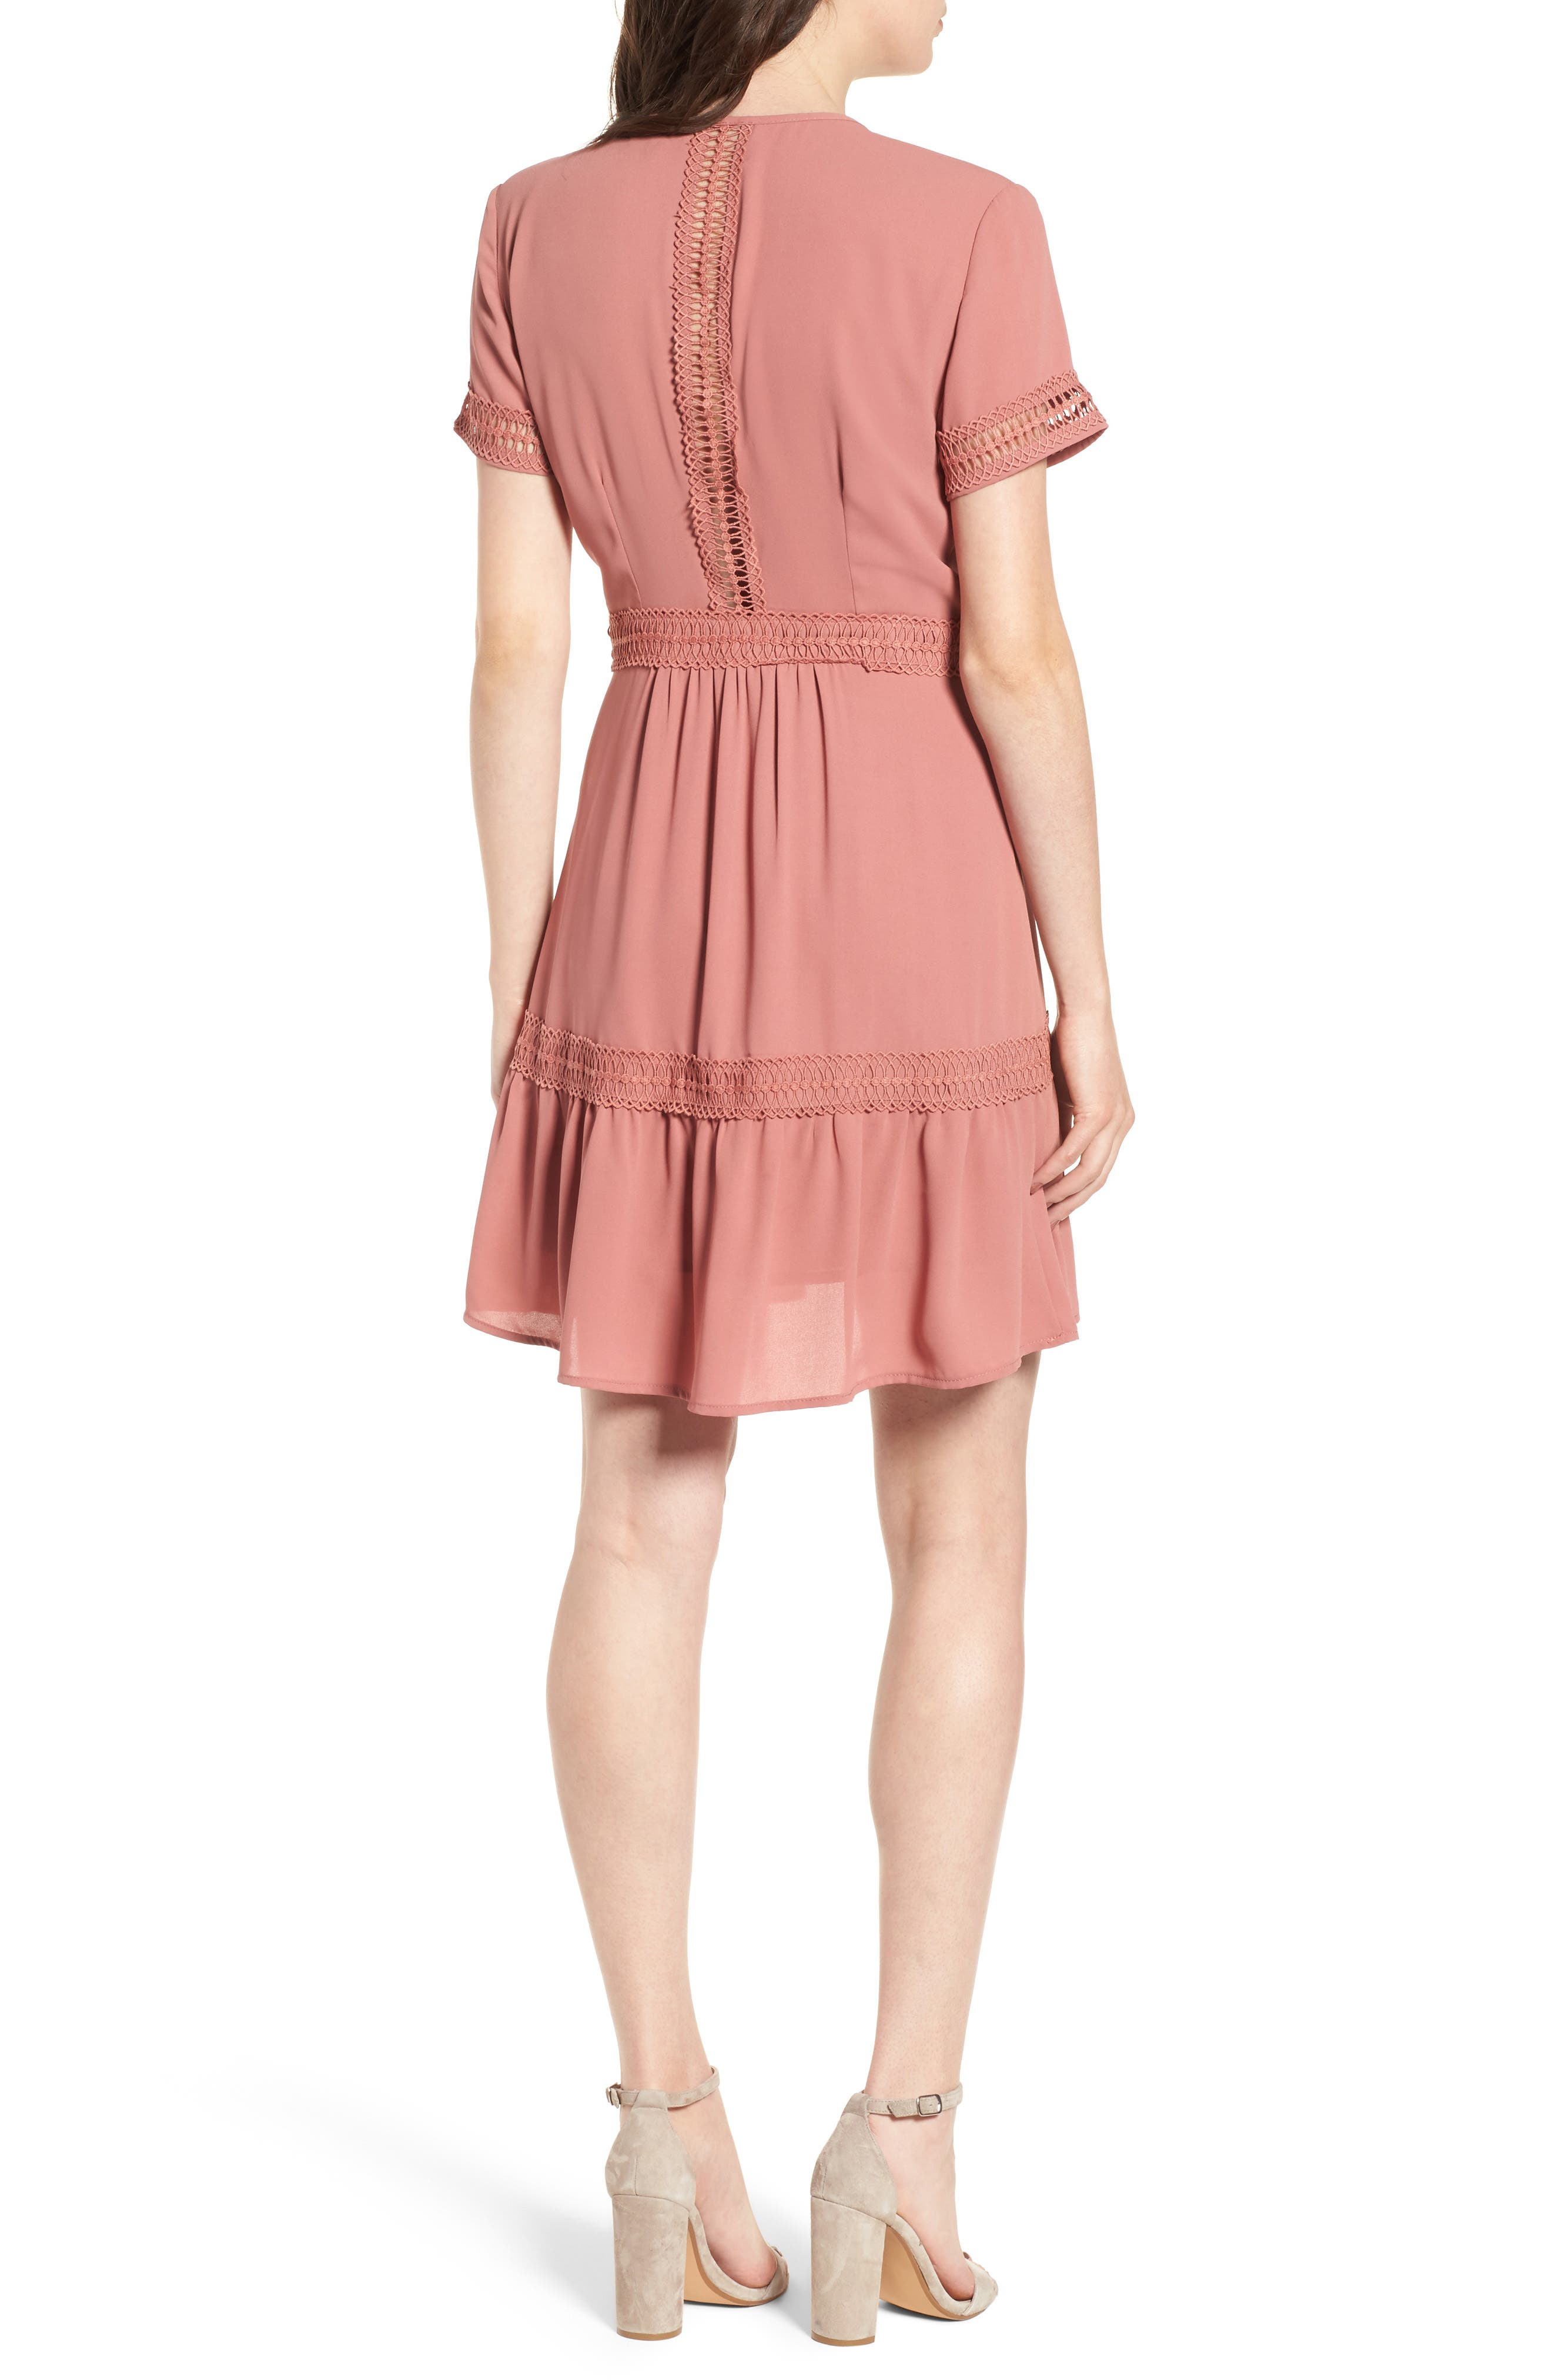 Take Hold Tiered Dress,                             Alternate thumbnail 4, color,